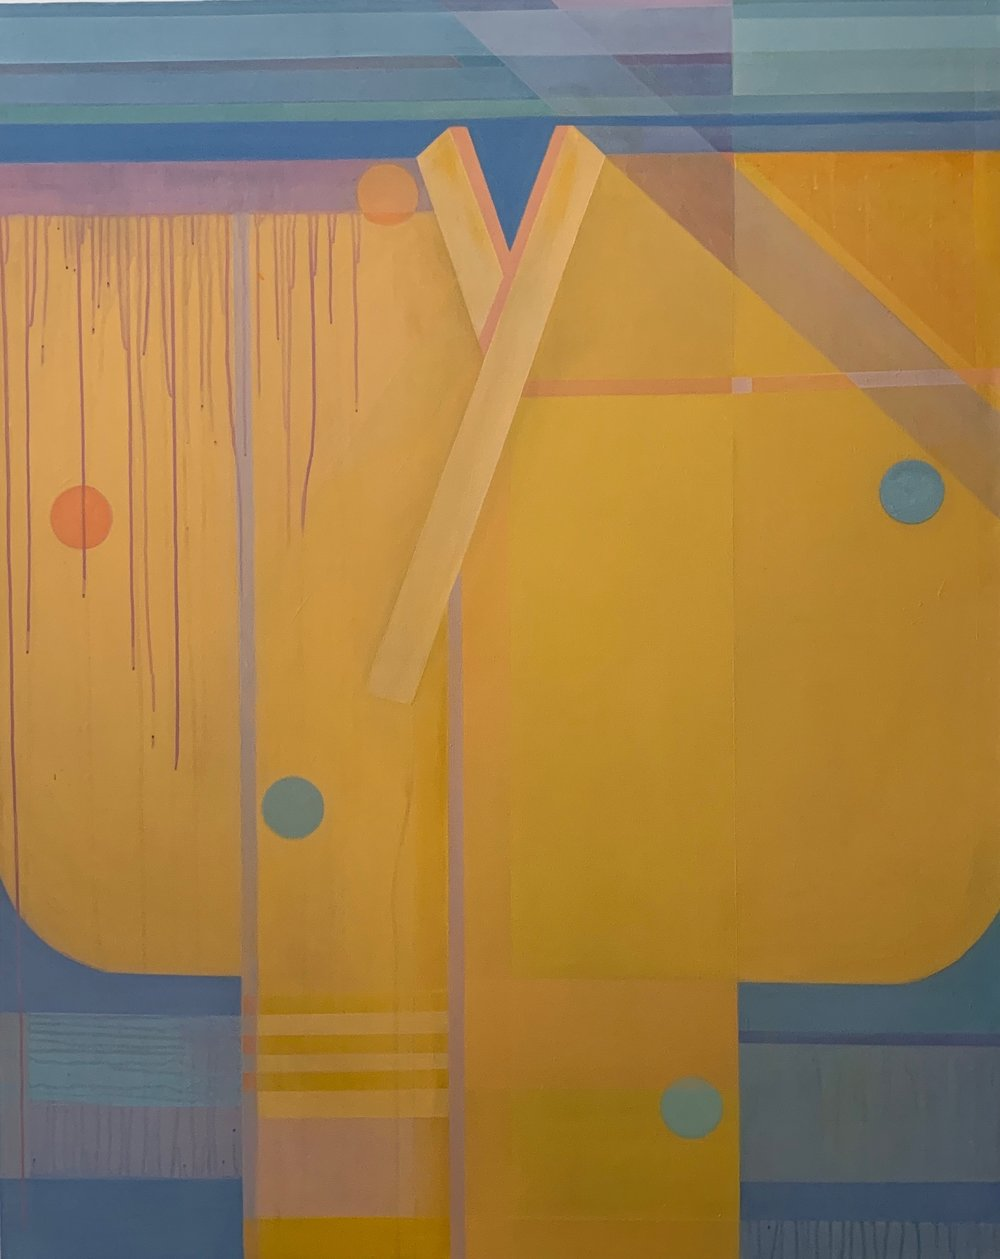 """- """"DOUBLE YELLOW""""SPRING/SUMMER 2019 JURIED SHOWEXHIBITION DATES: June 15 – July 31, 2019ARTISTS RECEPTION: June 22, 2019, 4-7 pmDEADLINE: May 24, 2019JUROR: Candace Loheed"""